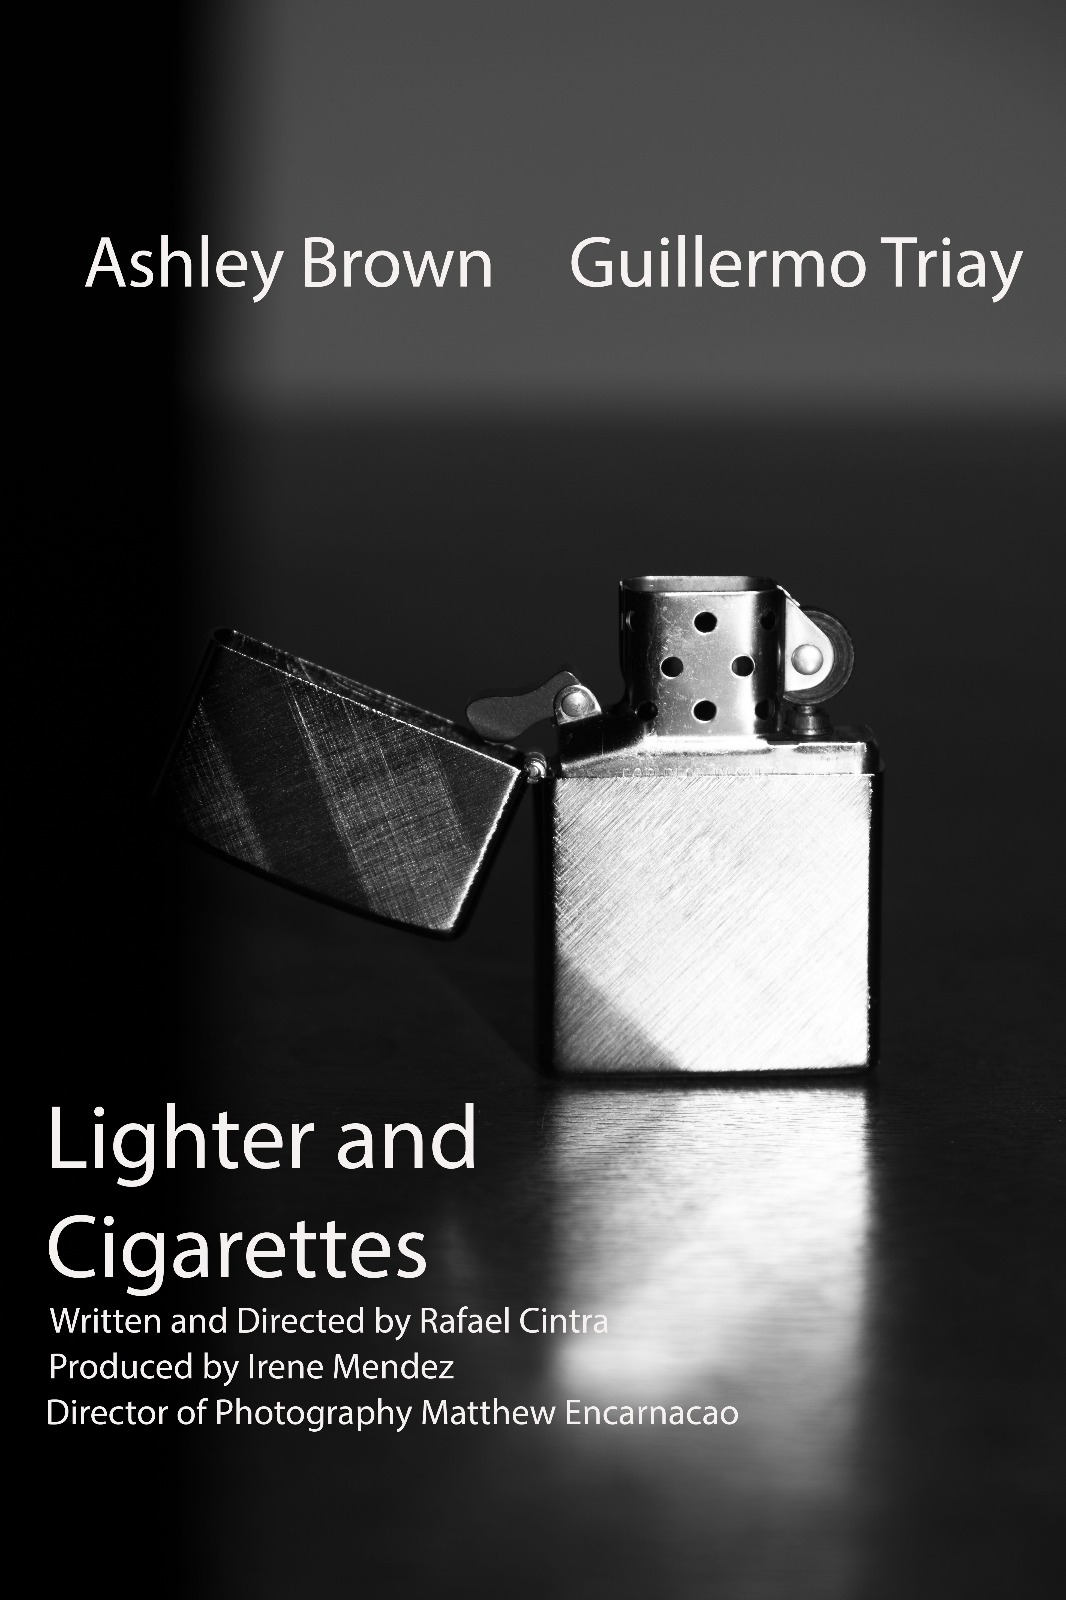 lighter and cigarettes poster20.24.46(1)